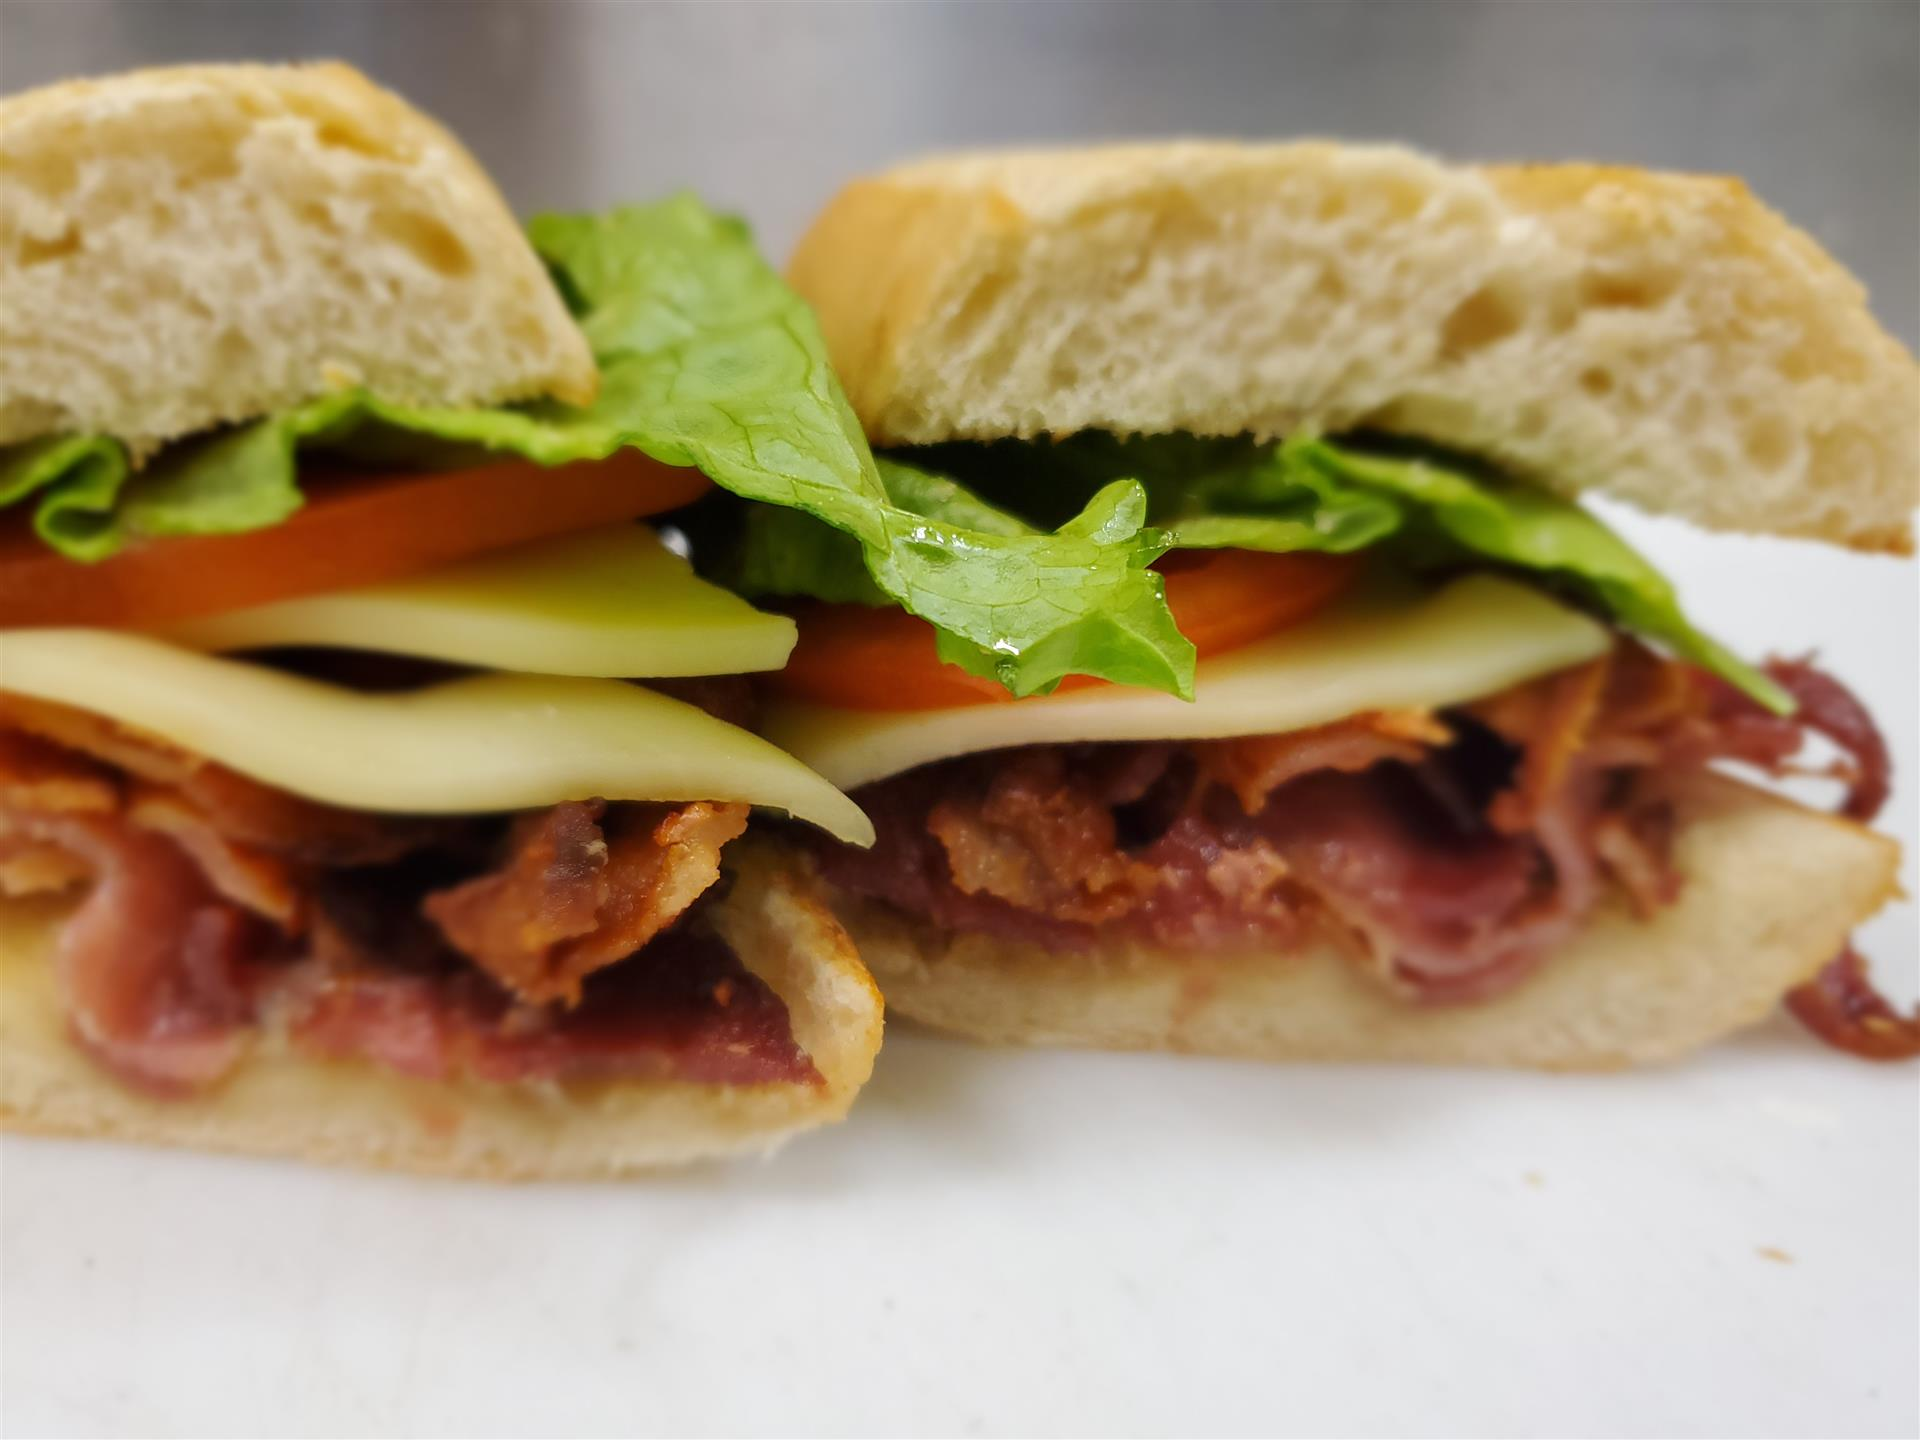 italian sub with lettuce, tomato and cheese